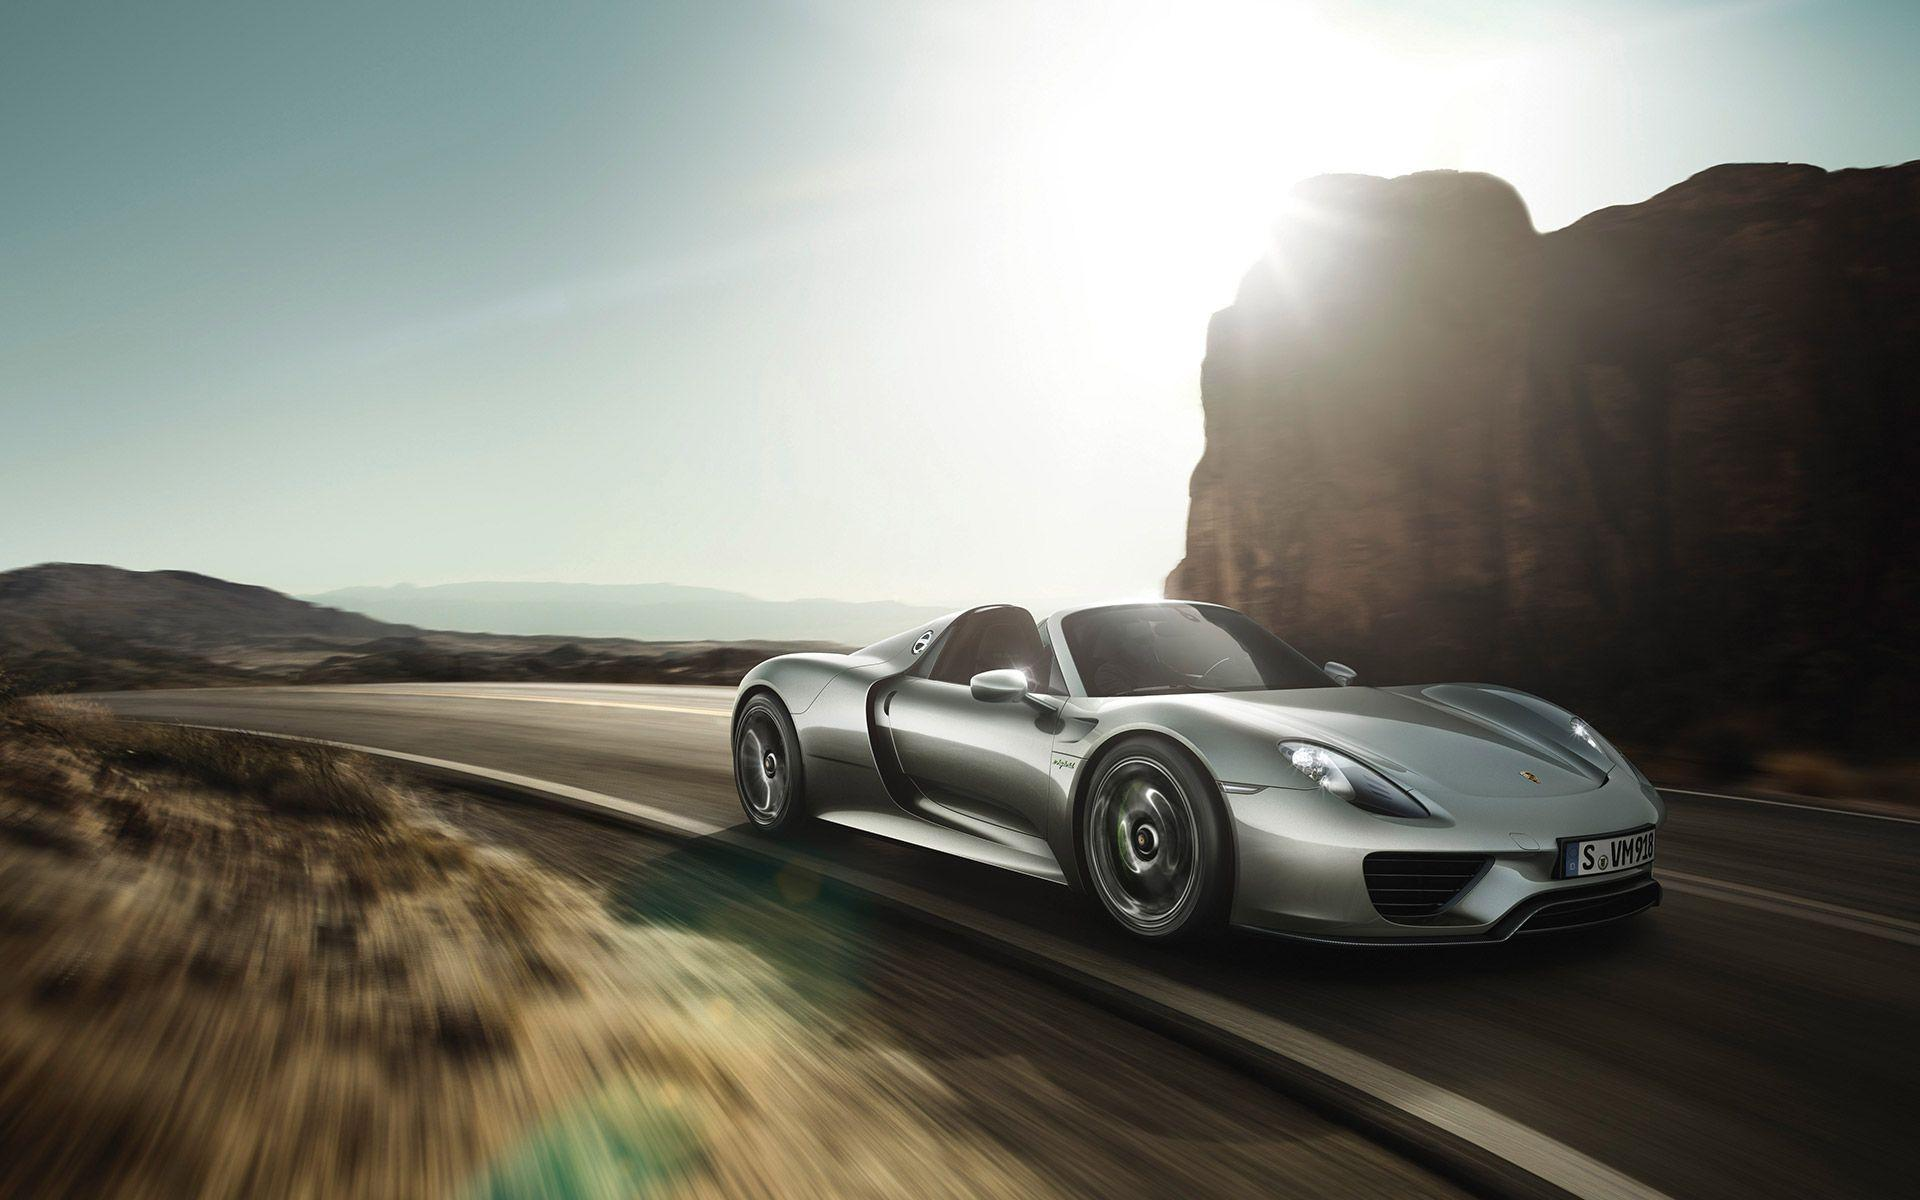 4K Ultra HD Porsche 918 Spyder Wallpapers for Free, Wallpapers